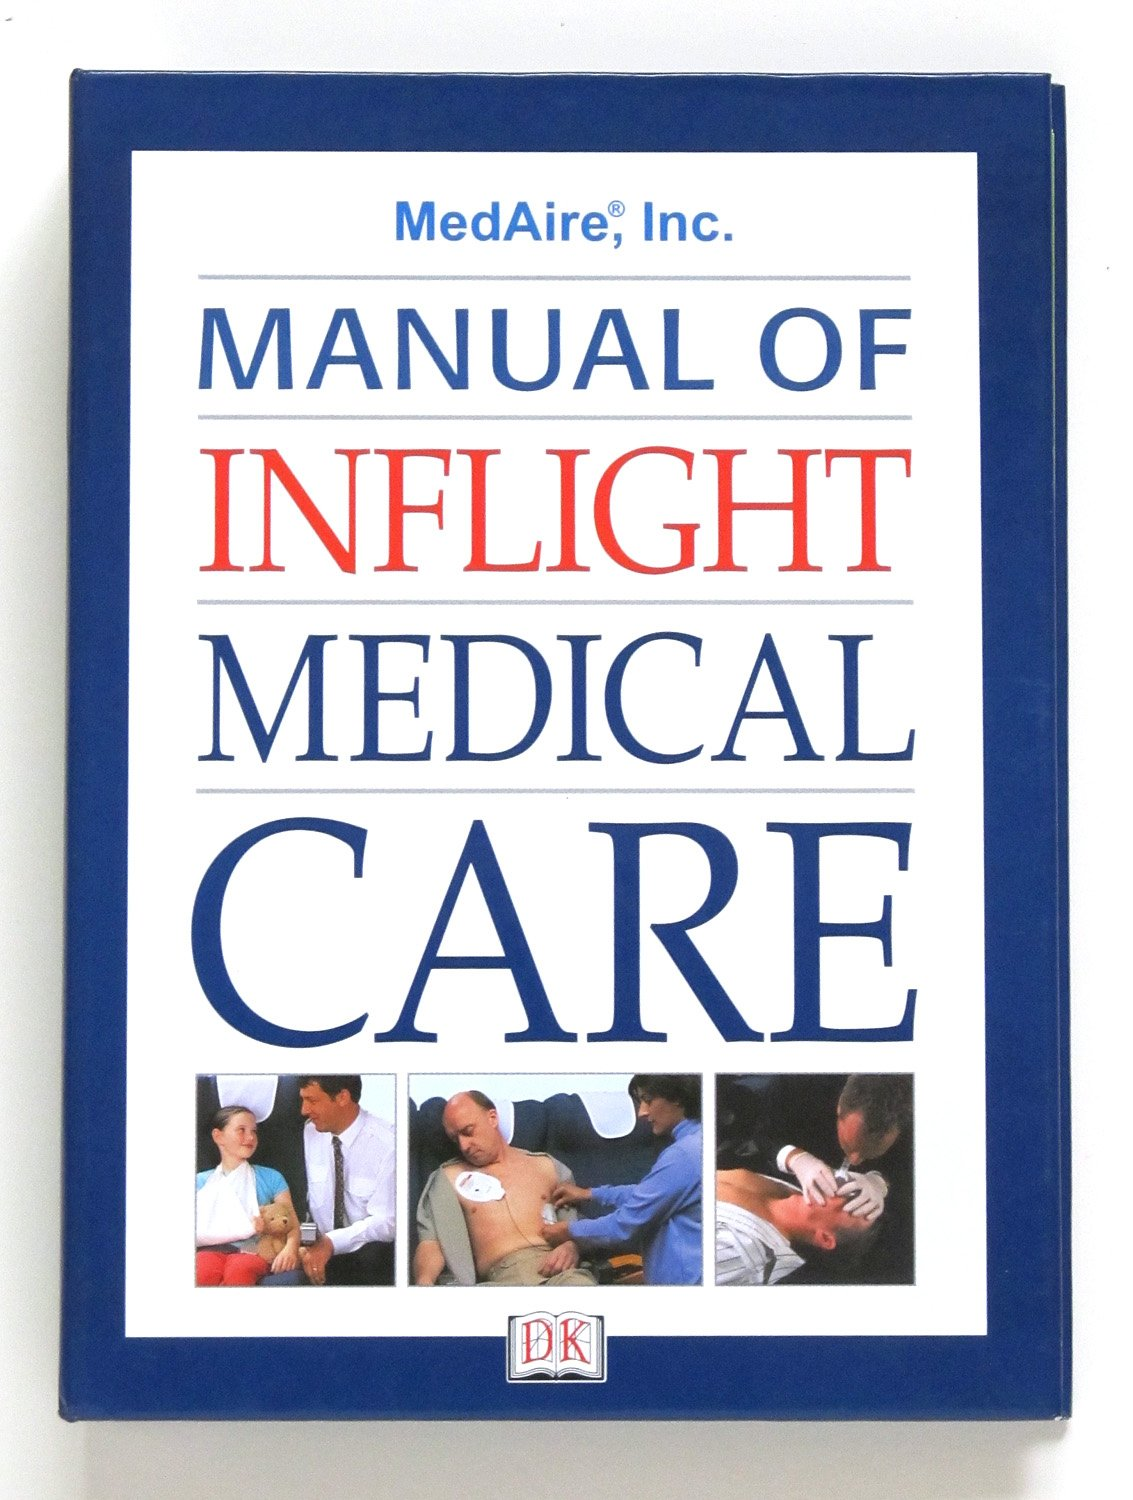 British Airways/Medaire Manual of Inflight Medical Care: Amazon.co.uk:  Jemima Dunne: 9780789486011: Books